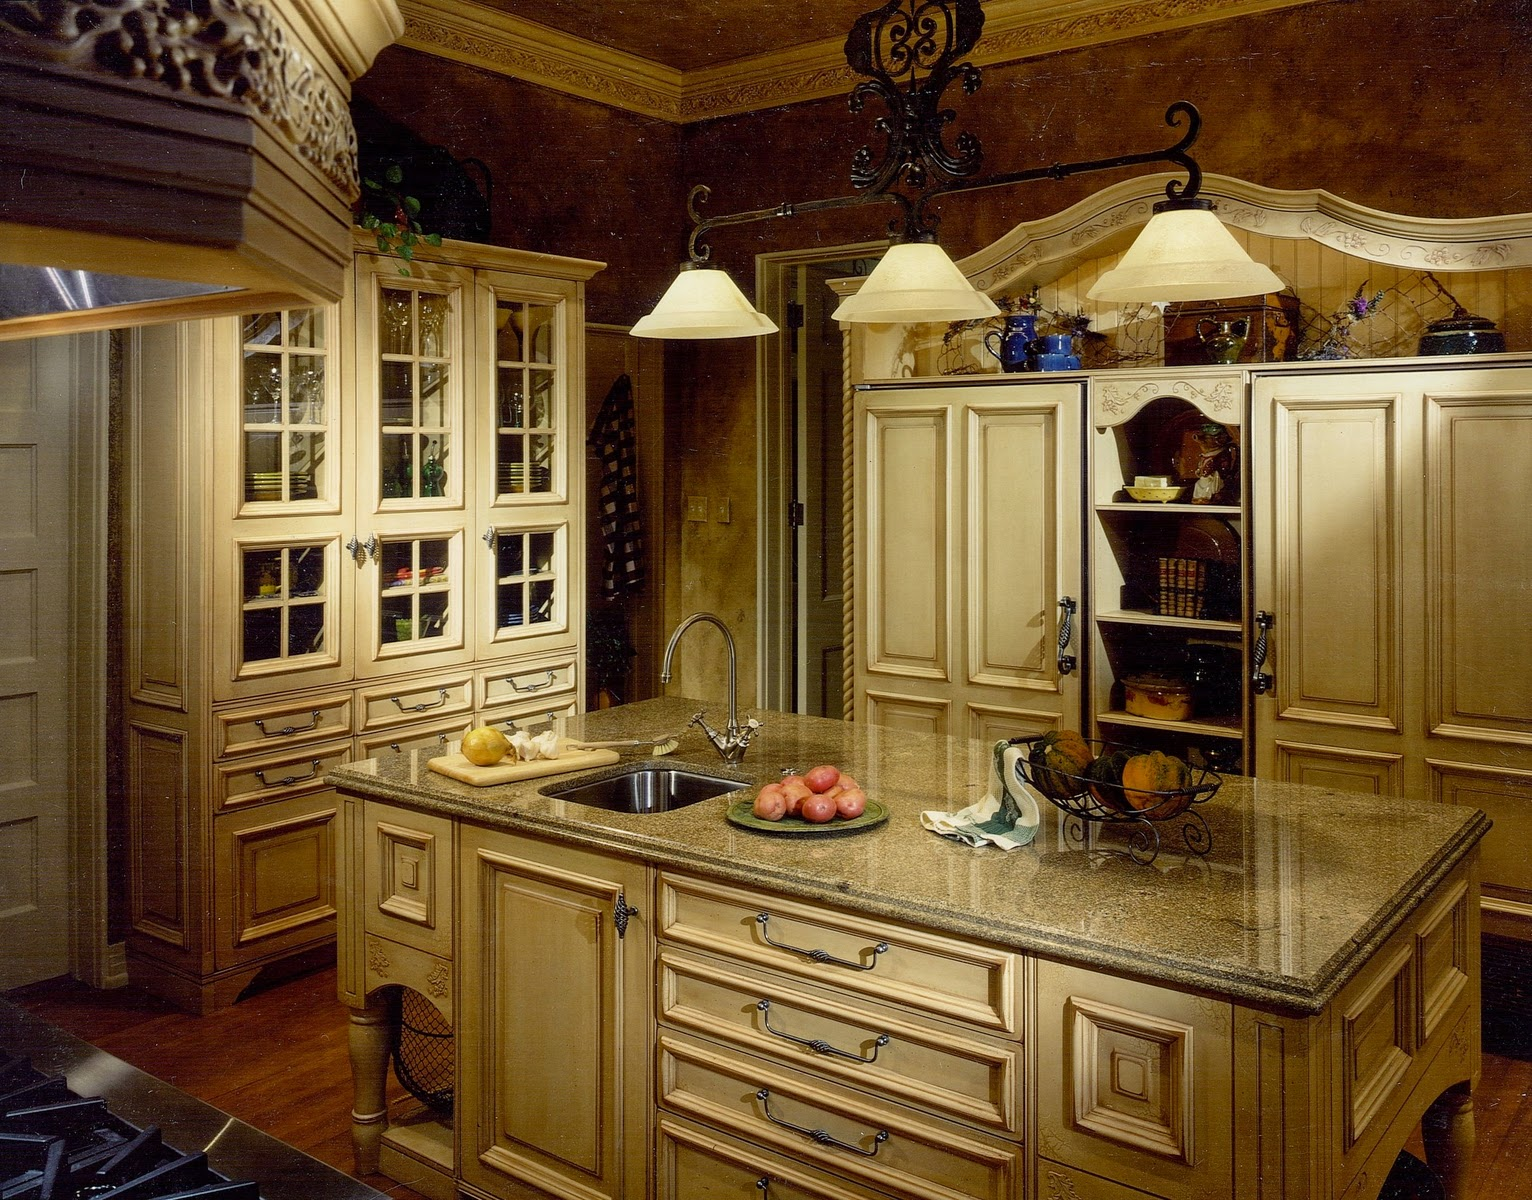 French country kitchen cabinets instant knowledge for Pictures of kitchen cupboards